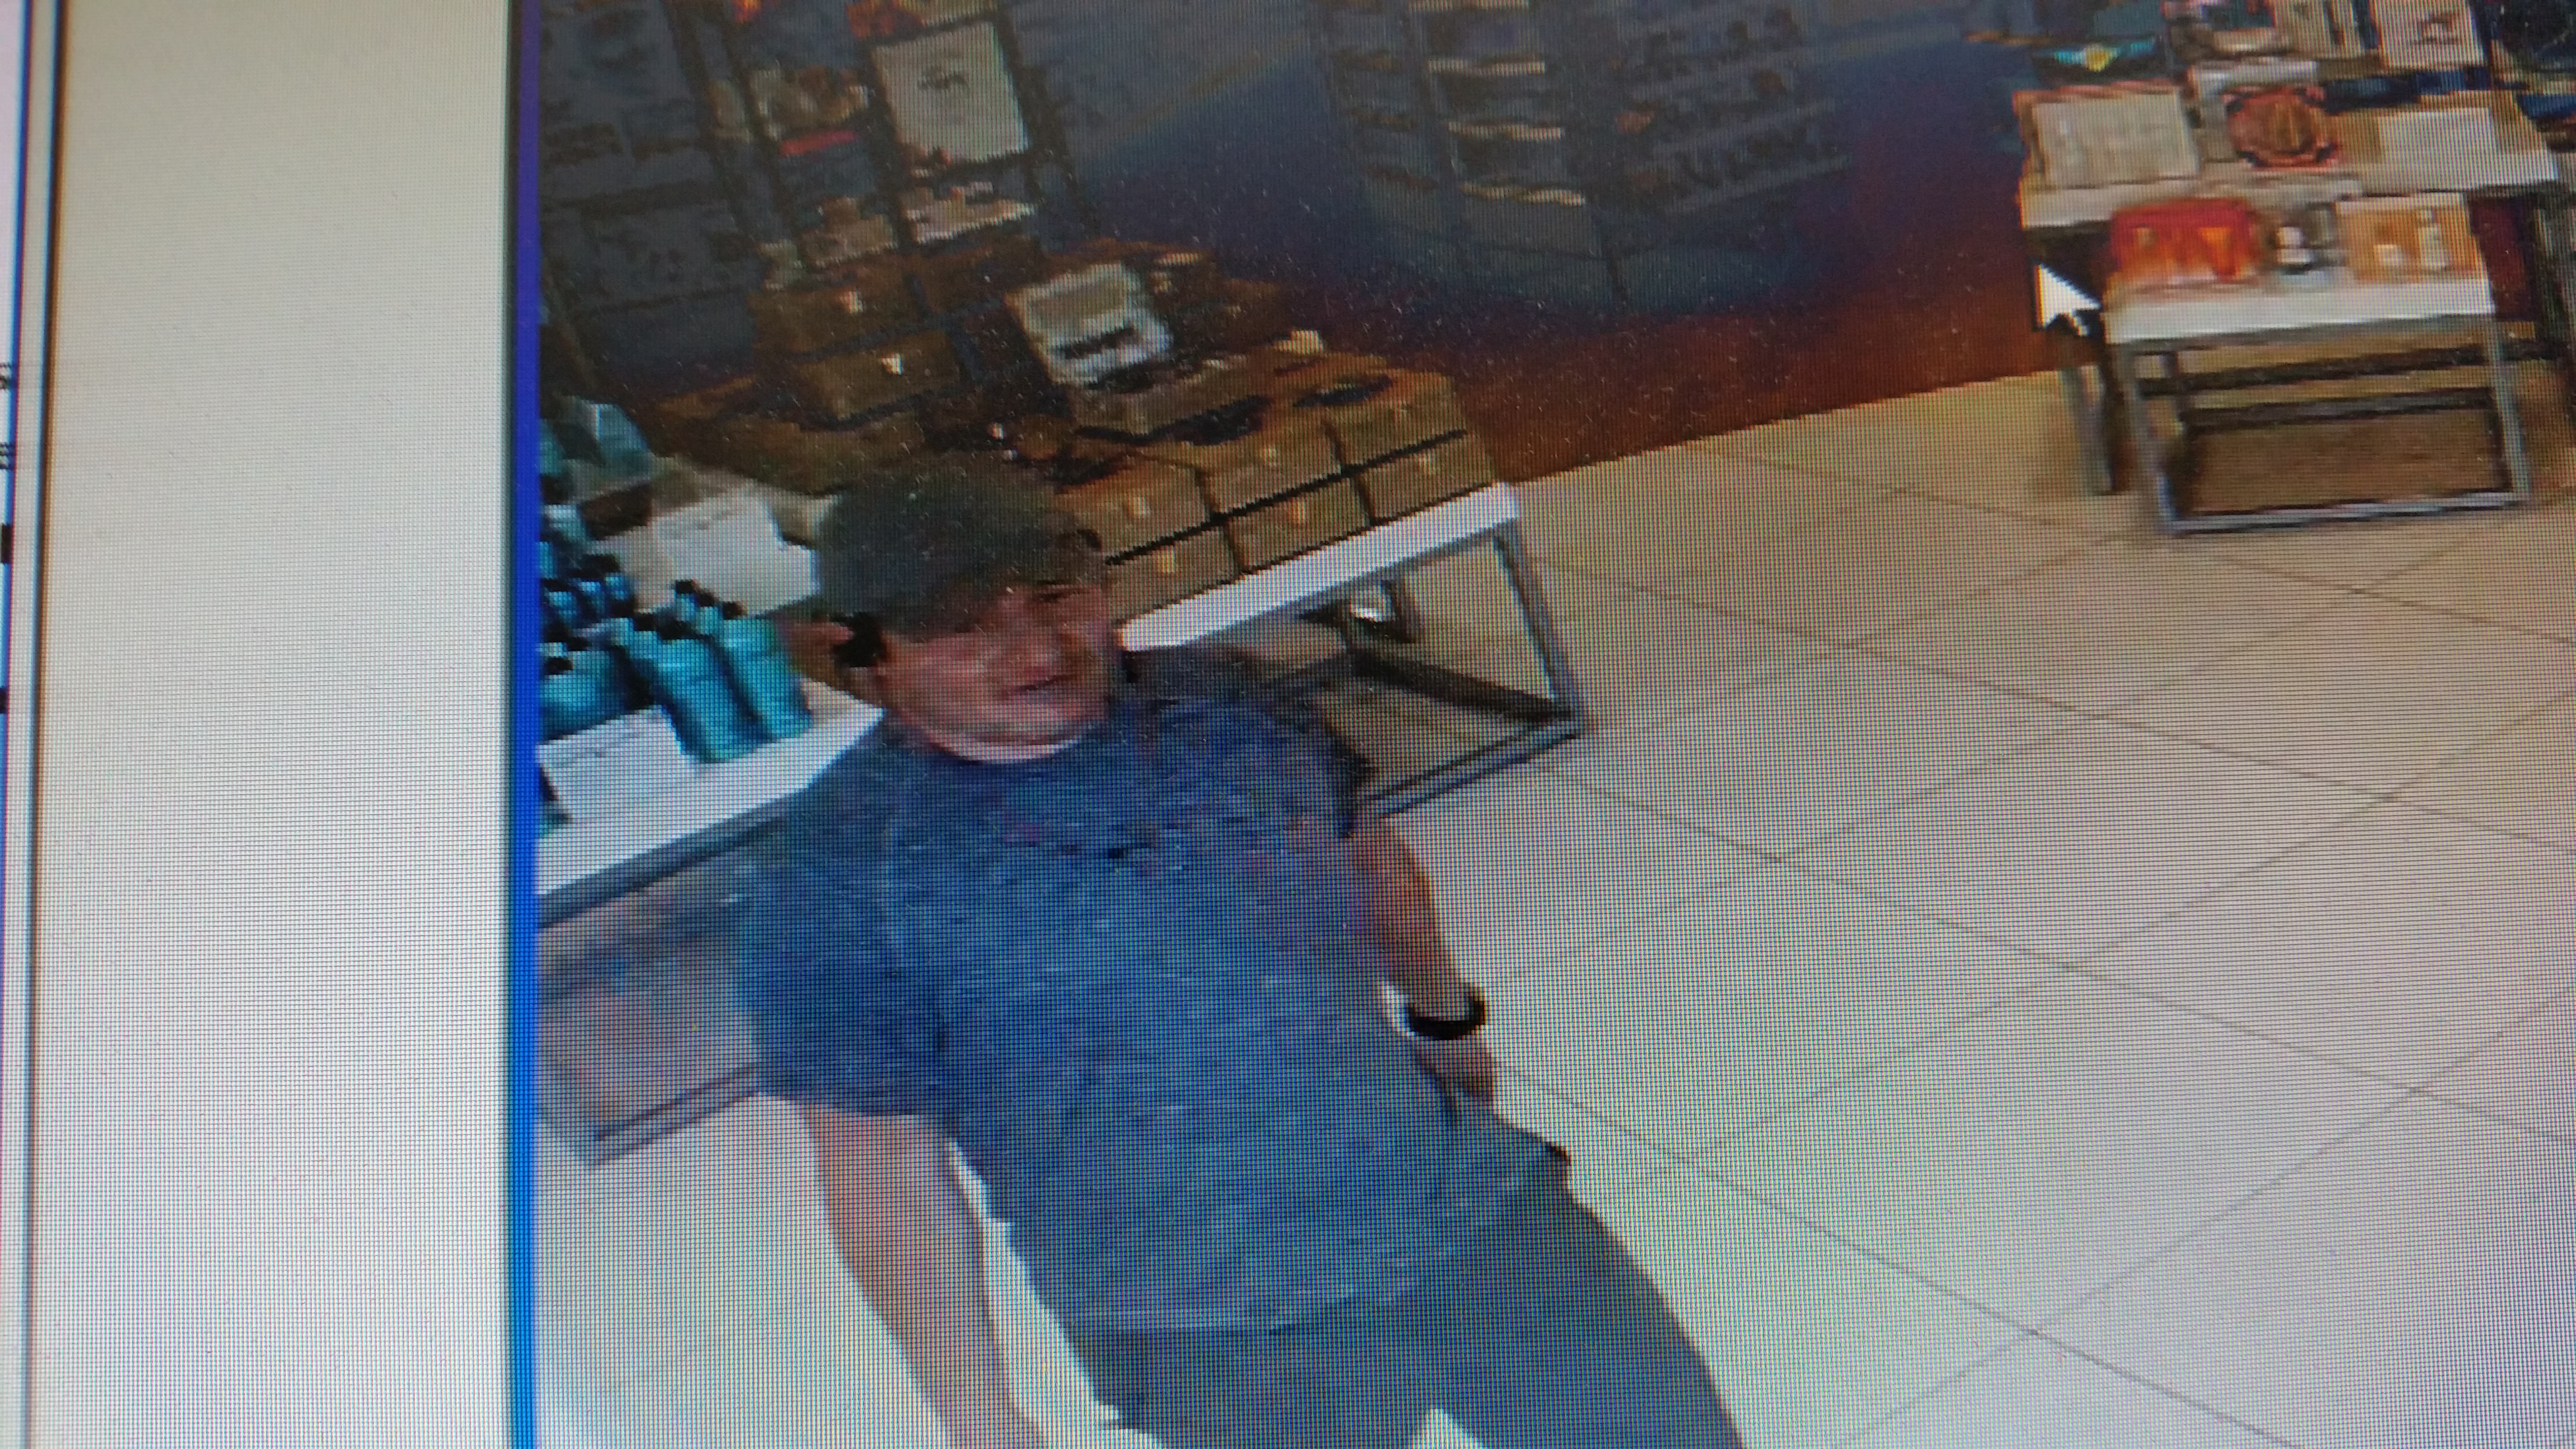 Buyer Beware: Police Searching For Credit Card Thief